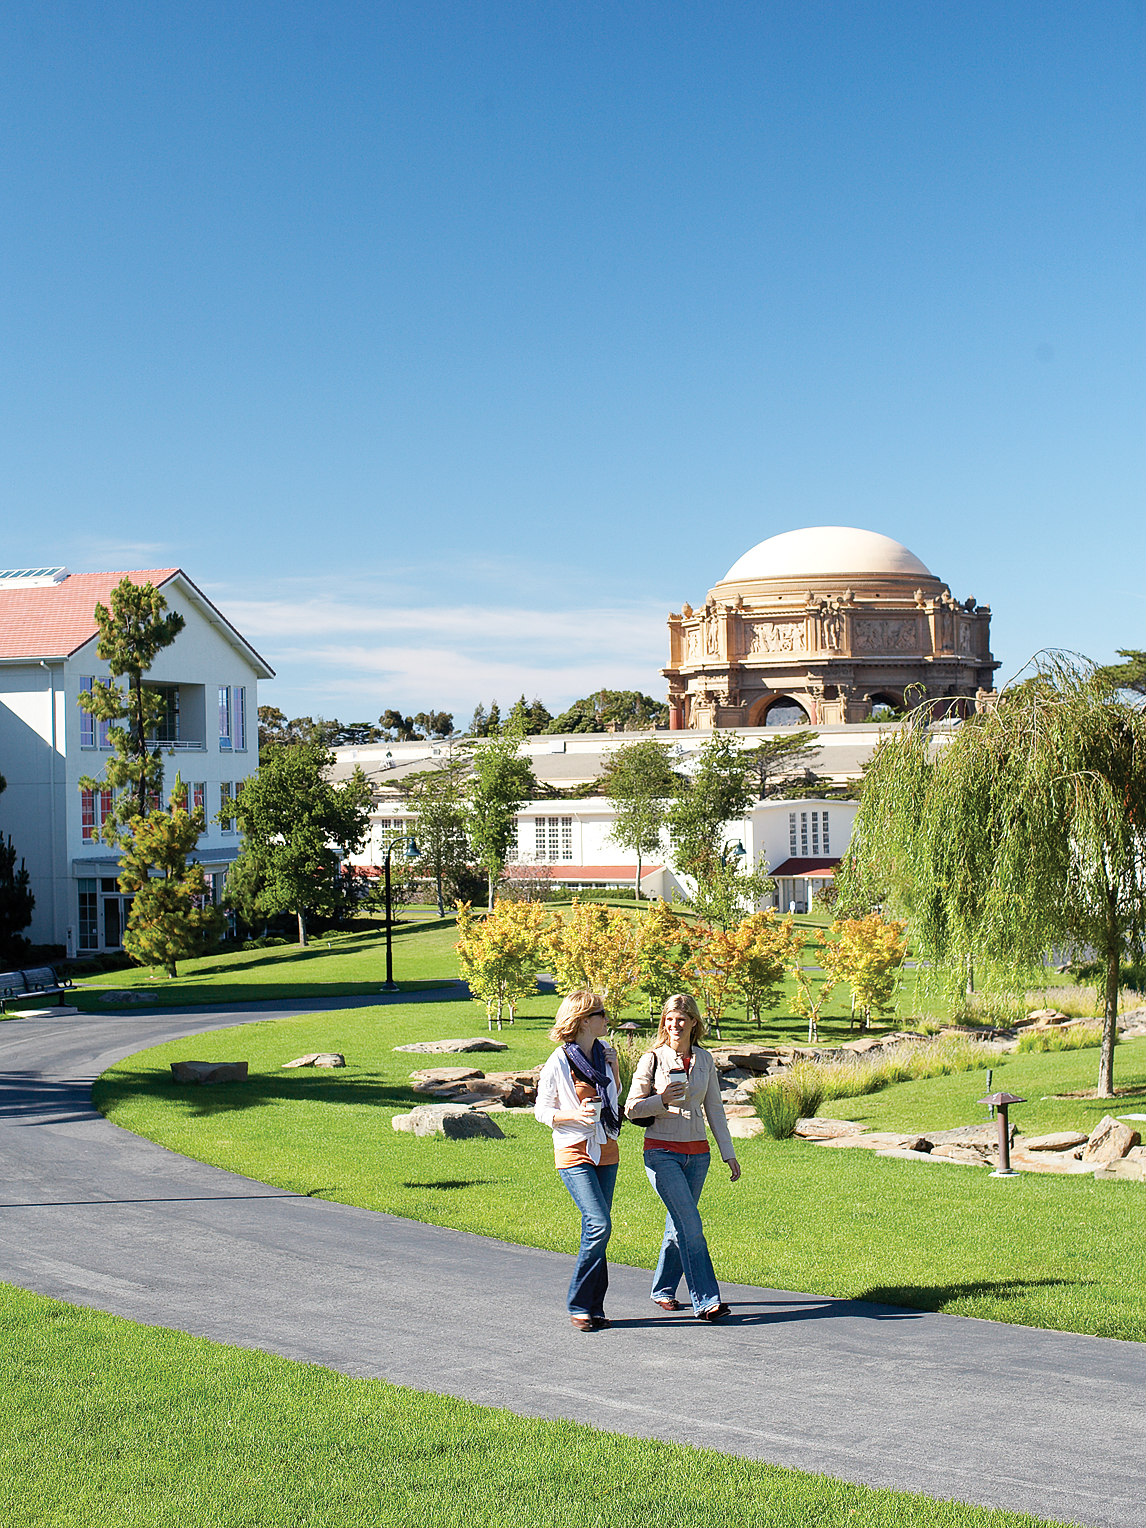 Rediscover the Presidio of San Francisco